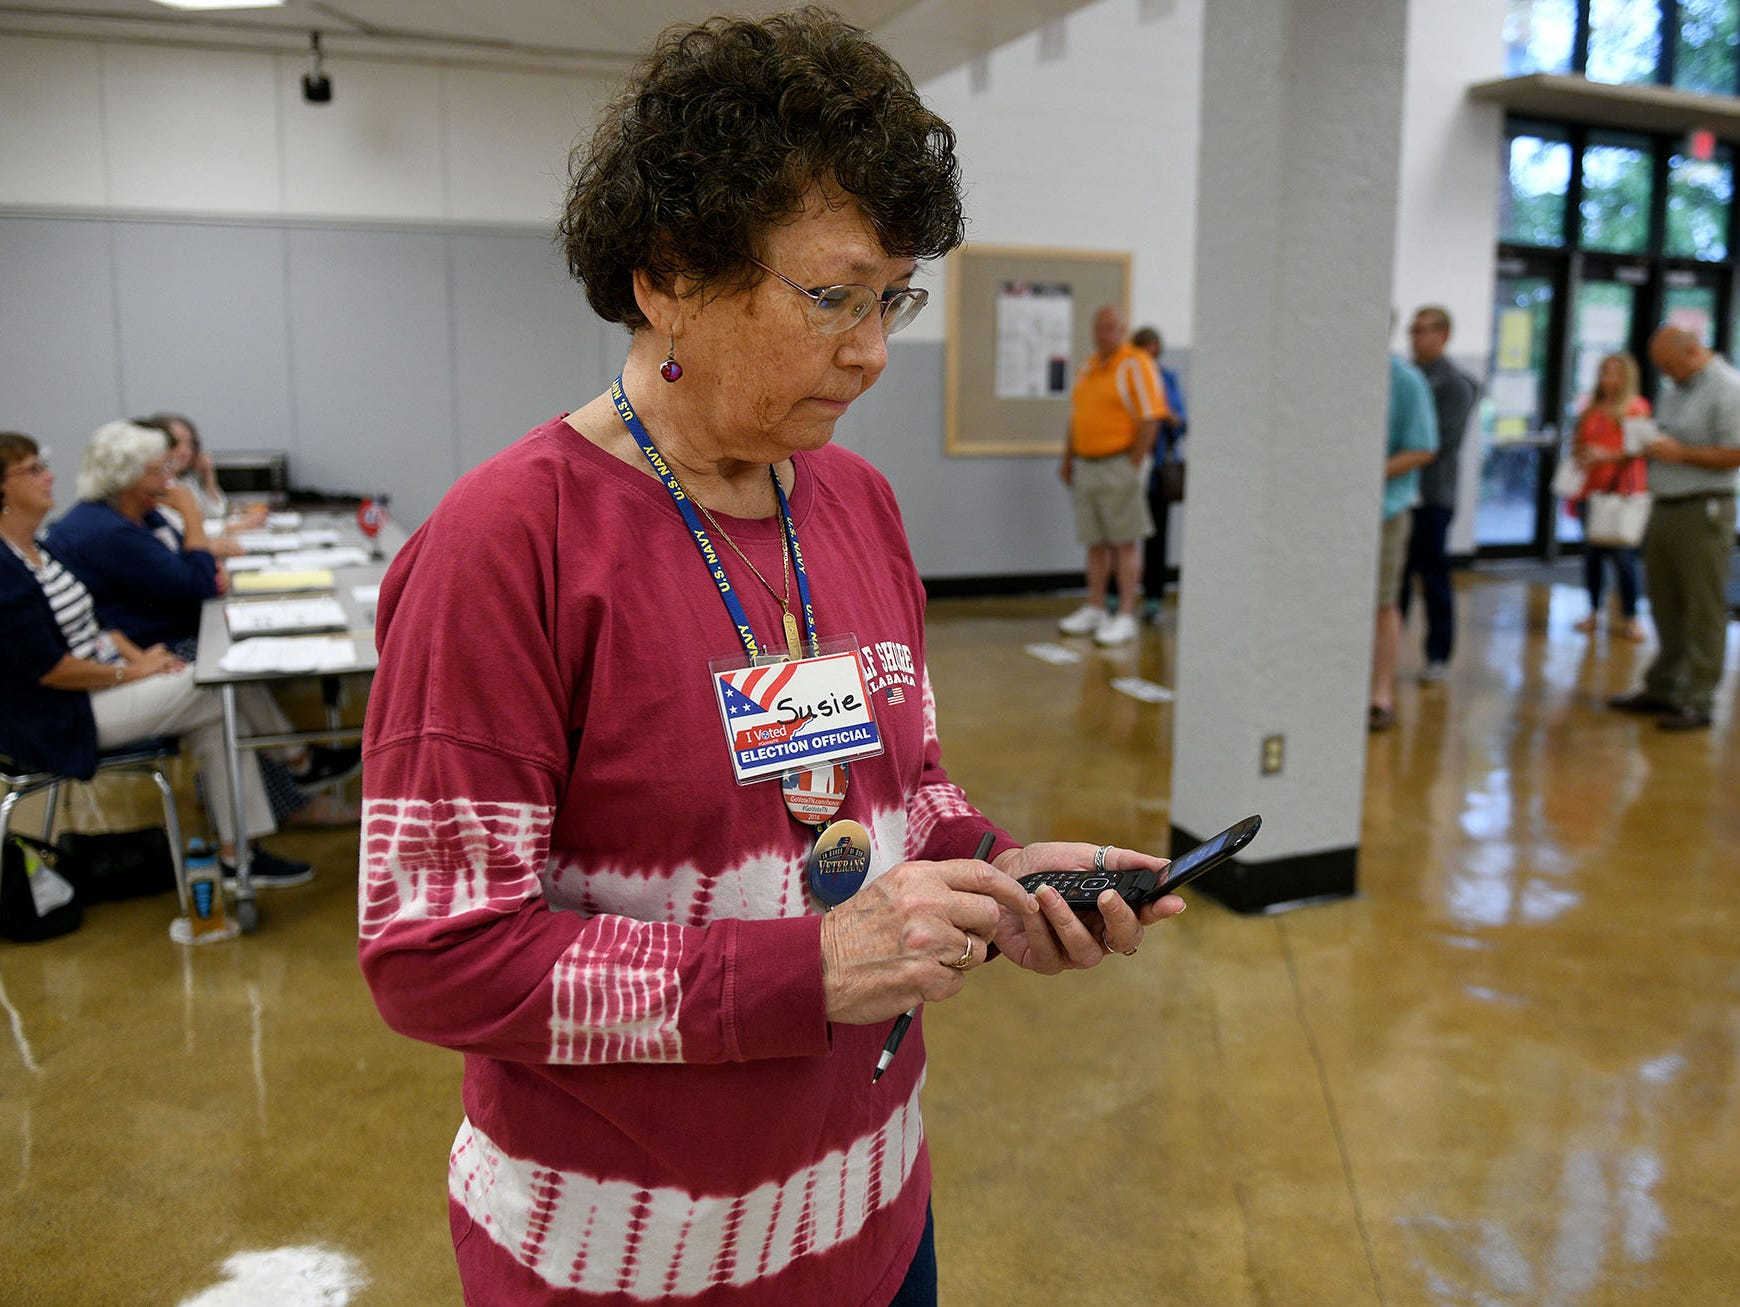 Farragut South election official Susie Cataldi watches the clock on her flip-phone to officially open the polls on election day in Knox County Thursday, August 2, 2018.